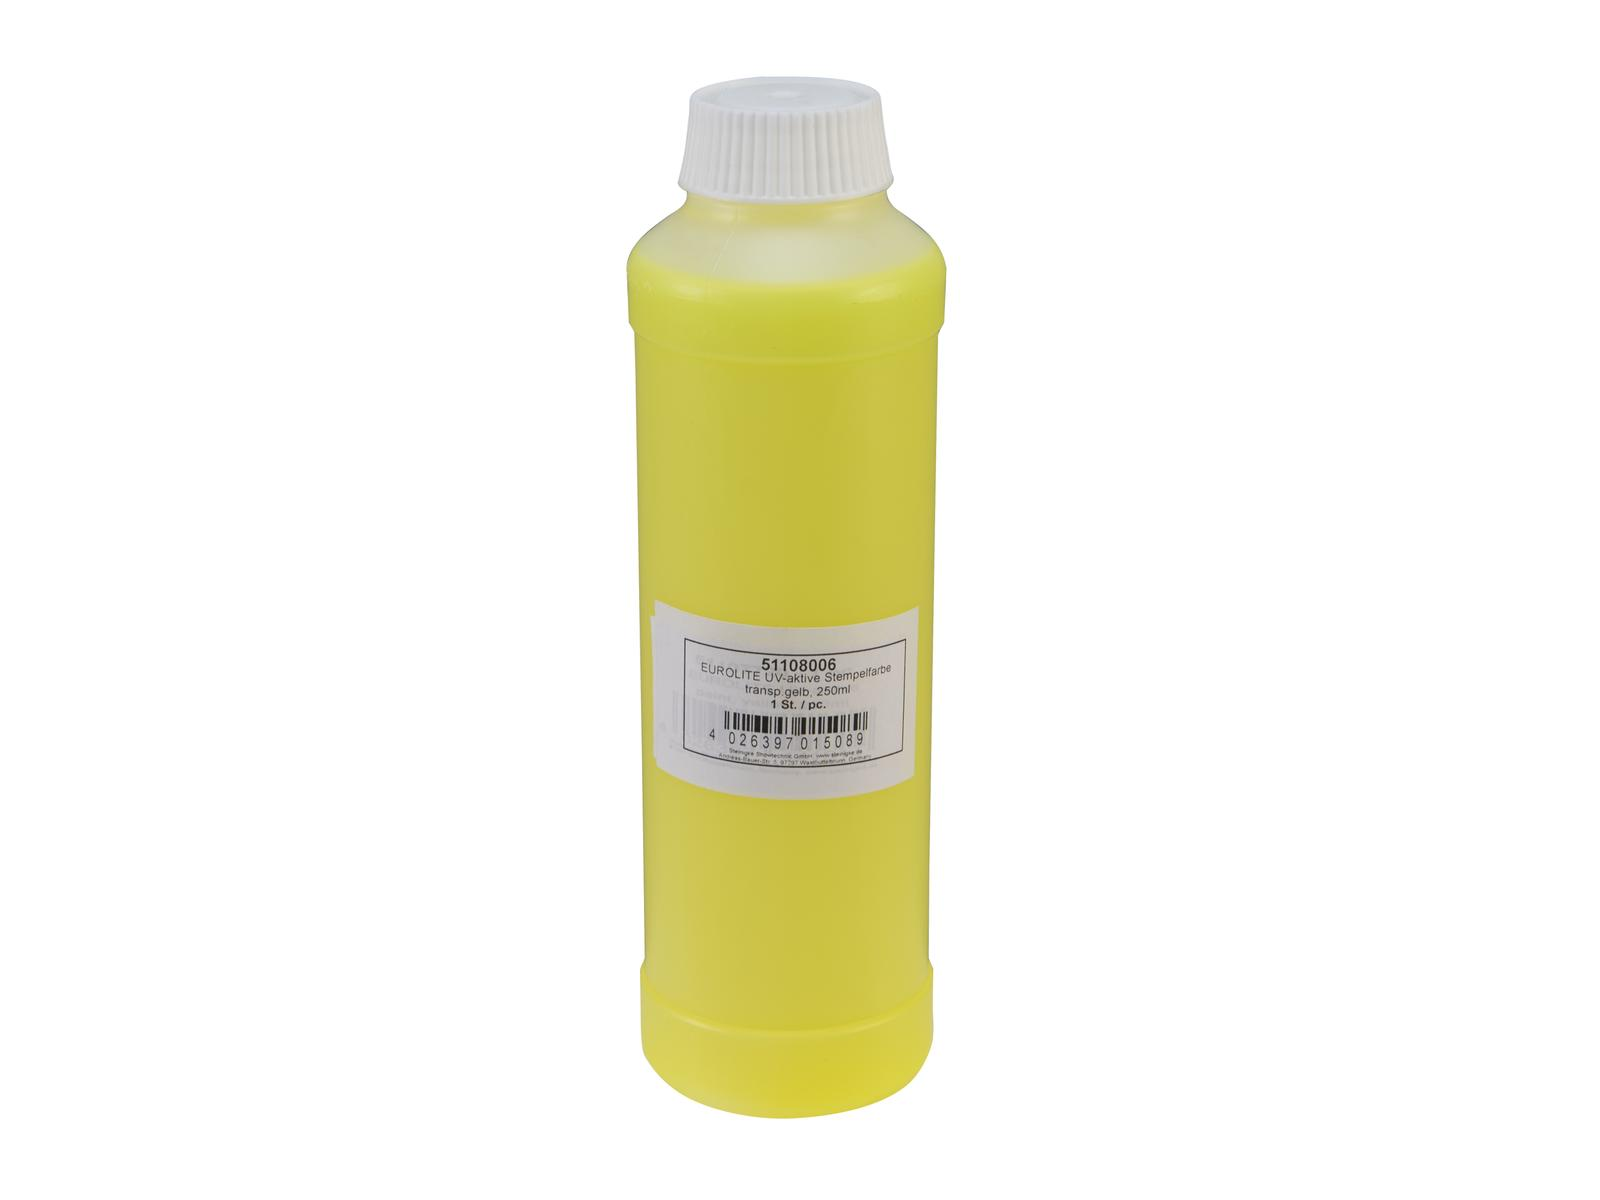 EUROLITE UV-aktive Stempelfarbe, transparent gelb, 250ml